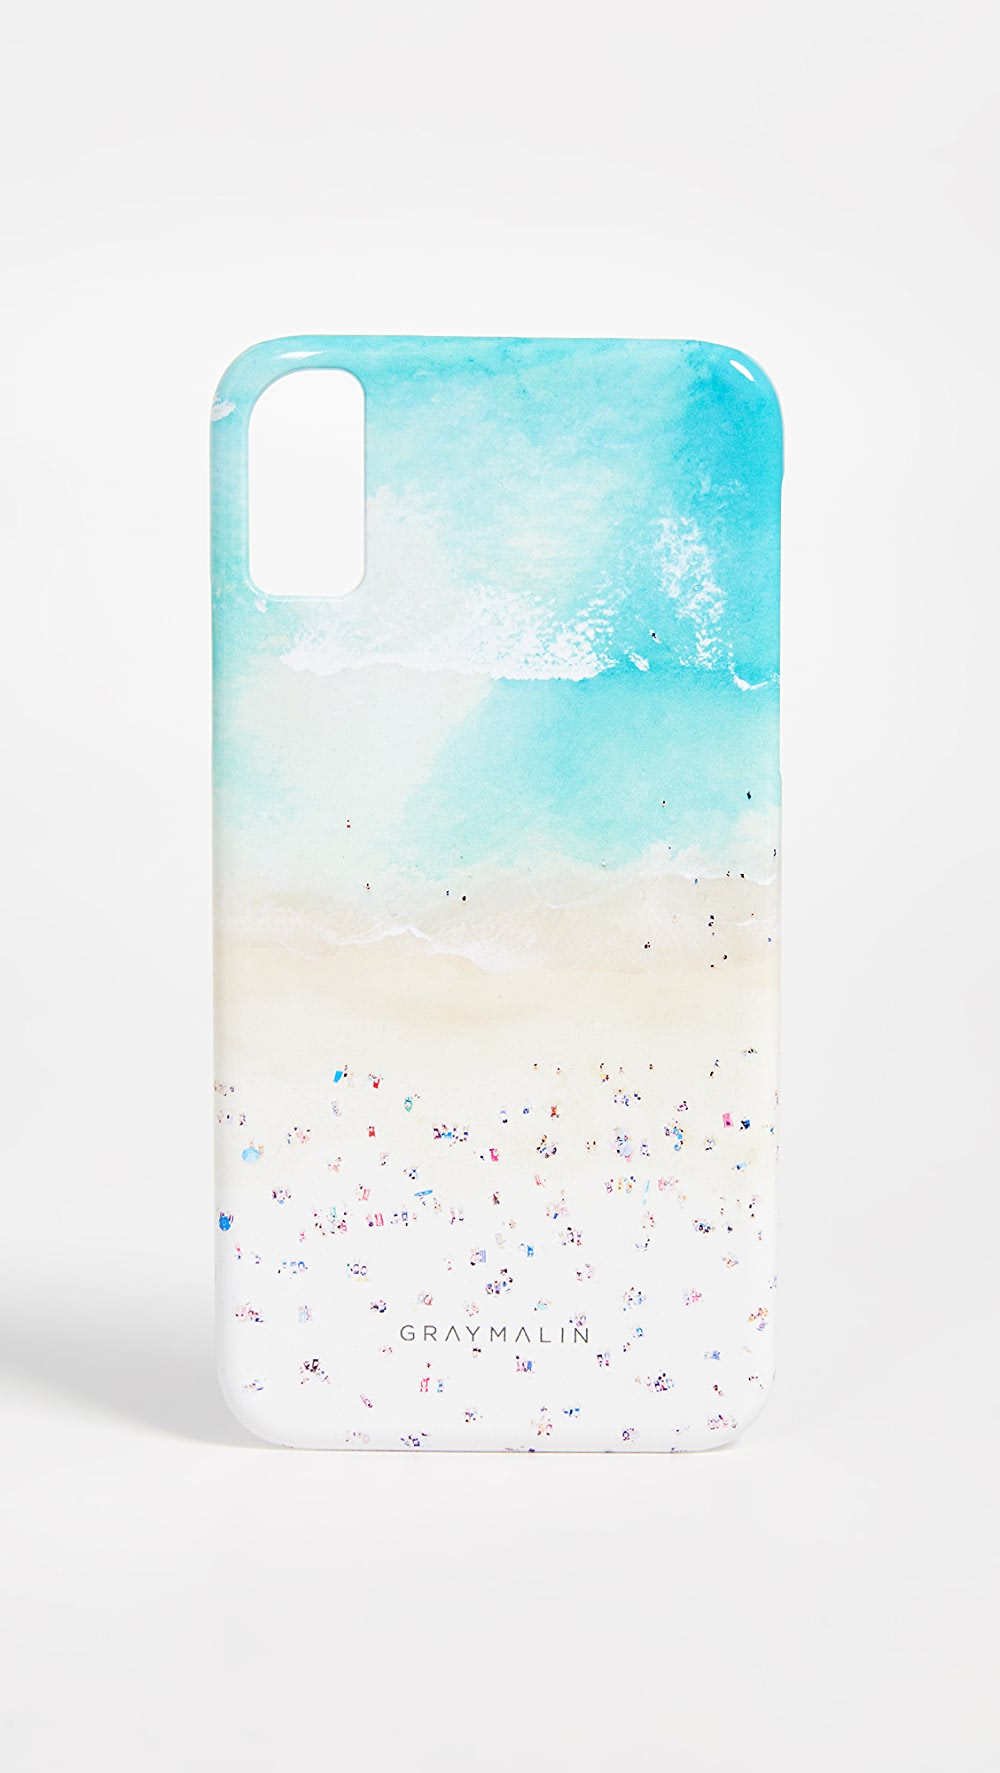 Frugal Gray Malin - The Bondi Iphone Case The Latest Fashion